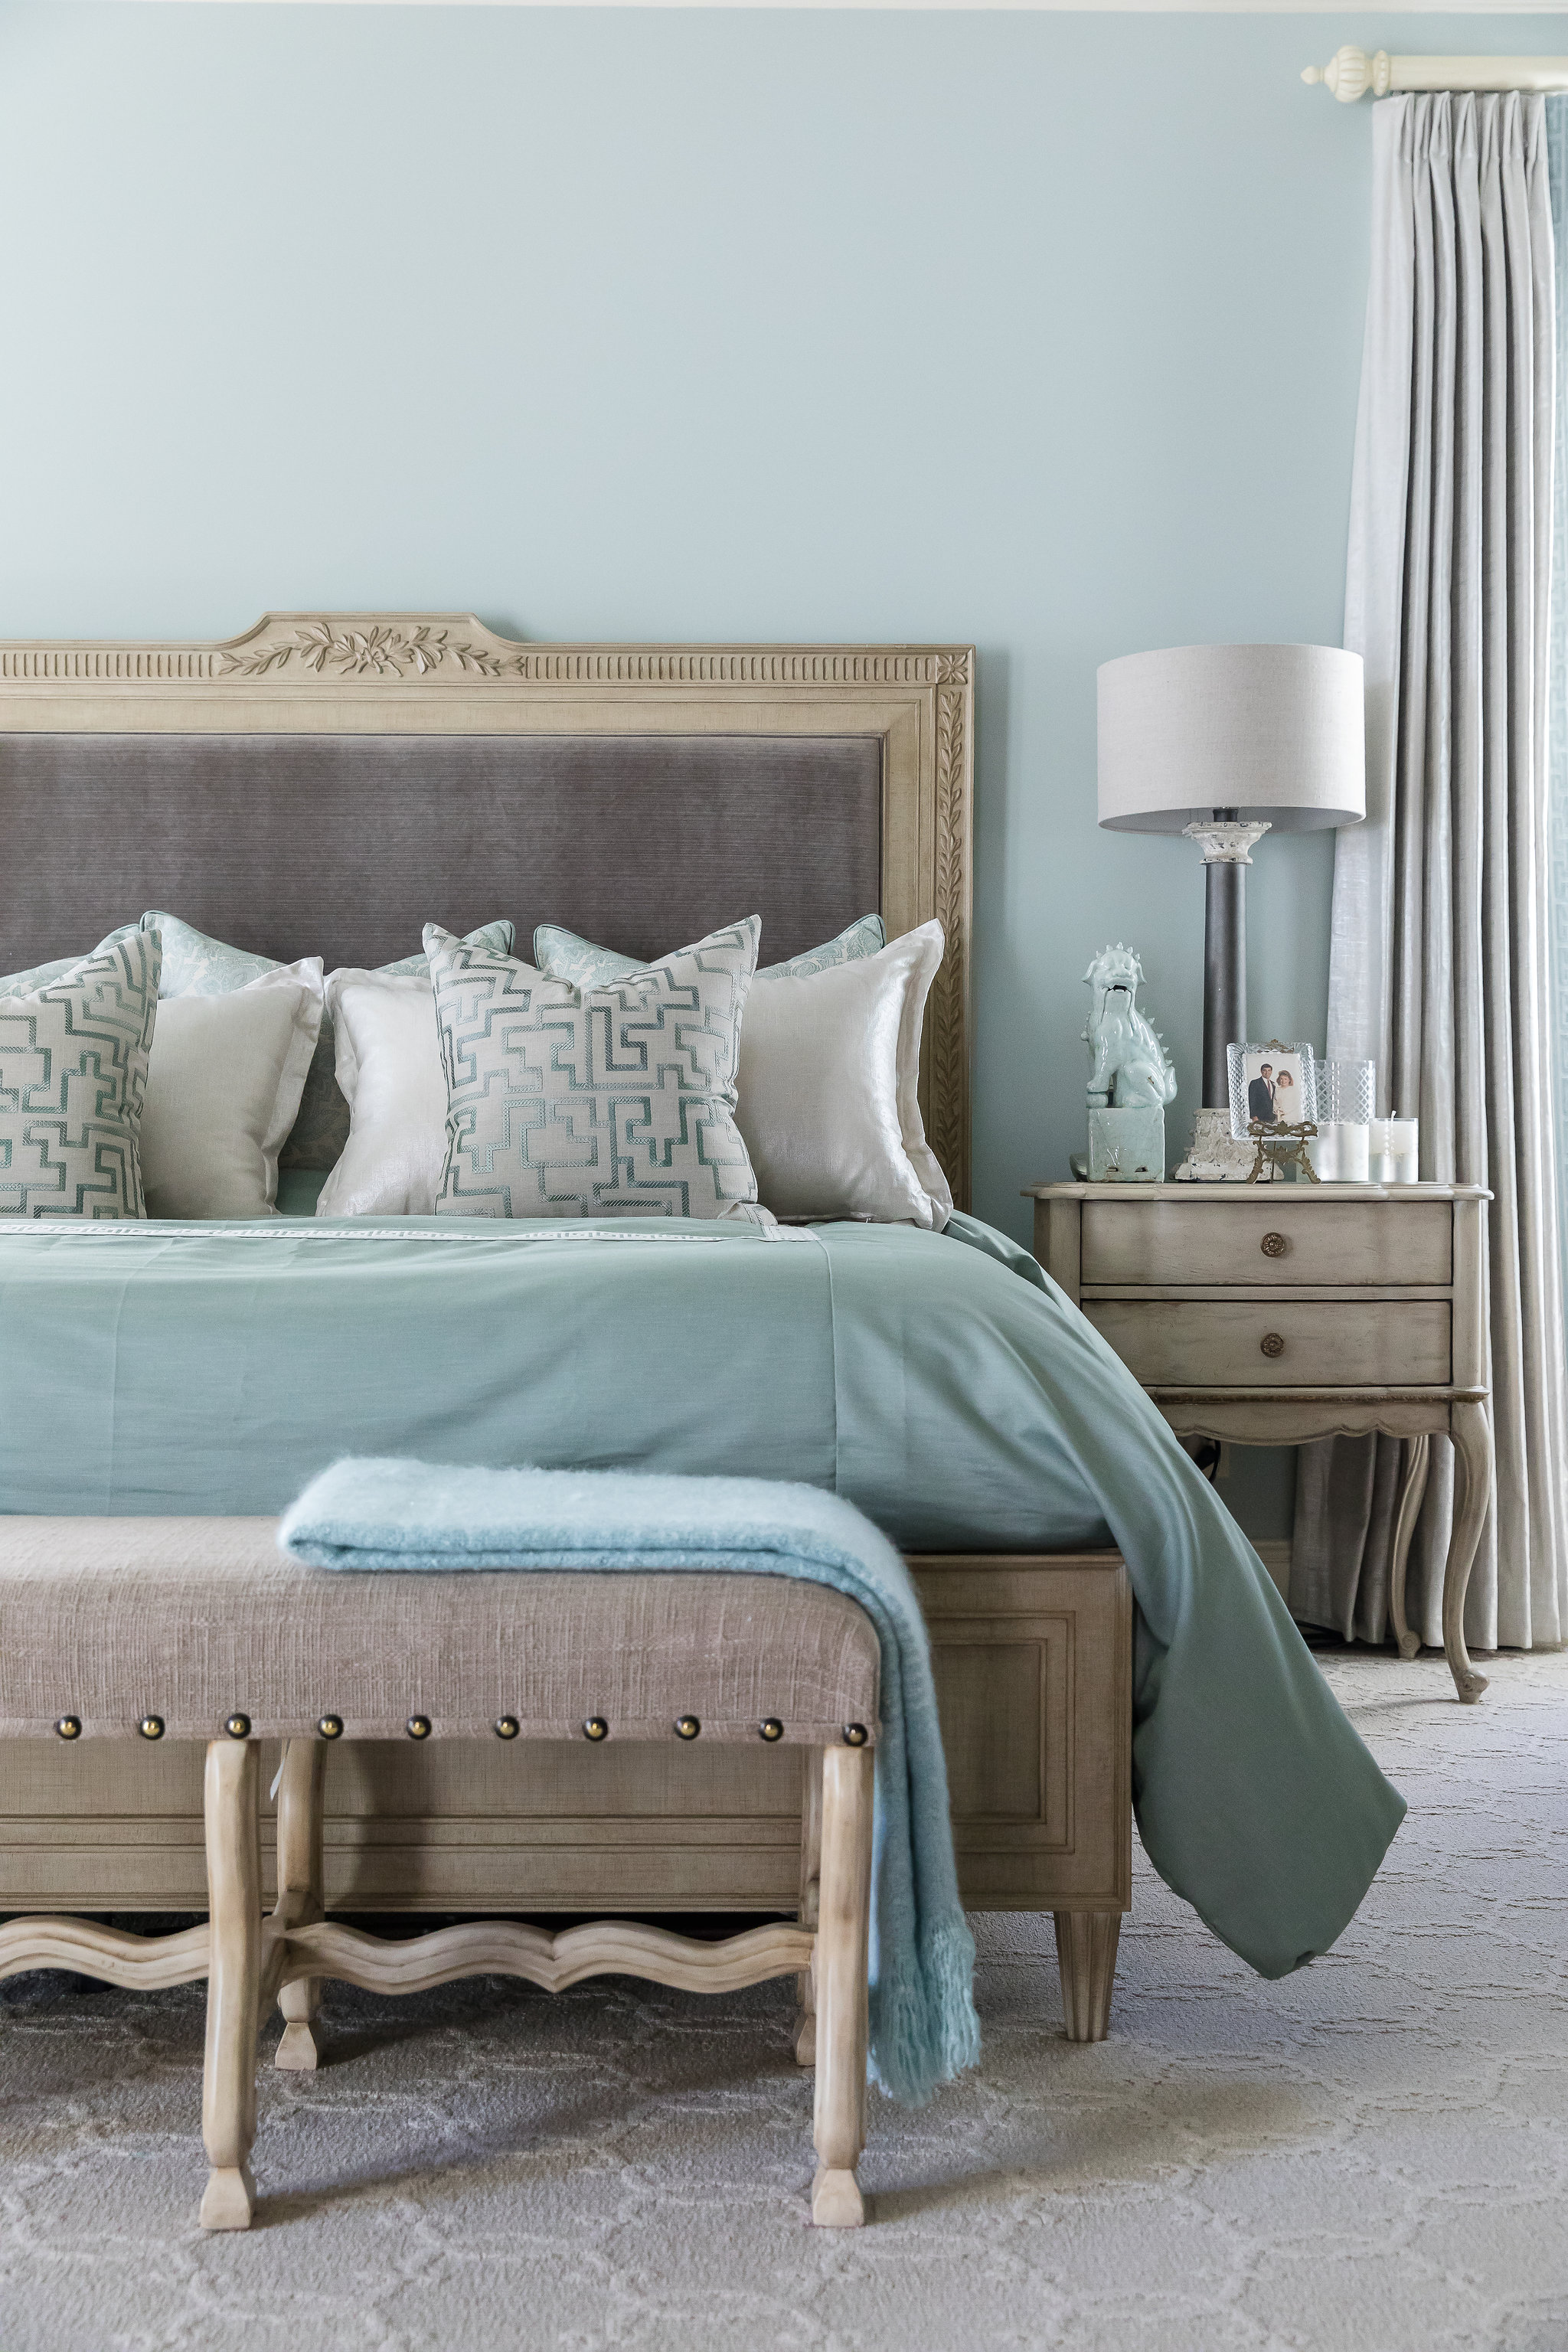 King size master bed and interior design in Nashville, TN by Eric Ross Interiors, call today to schedule with our interior designers.